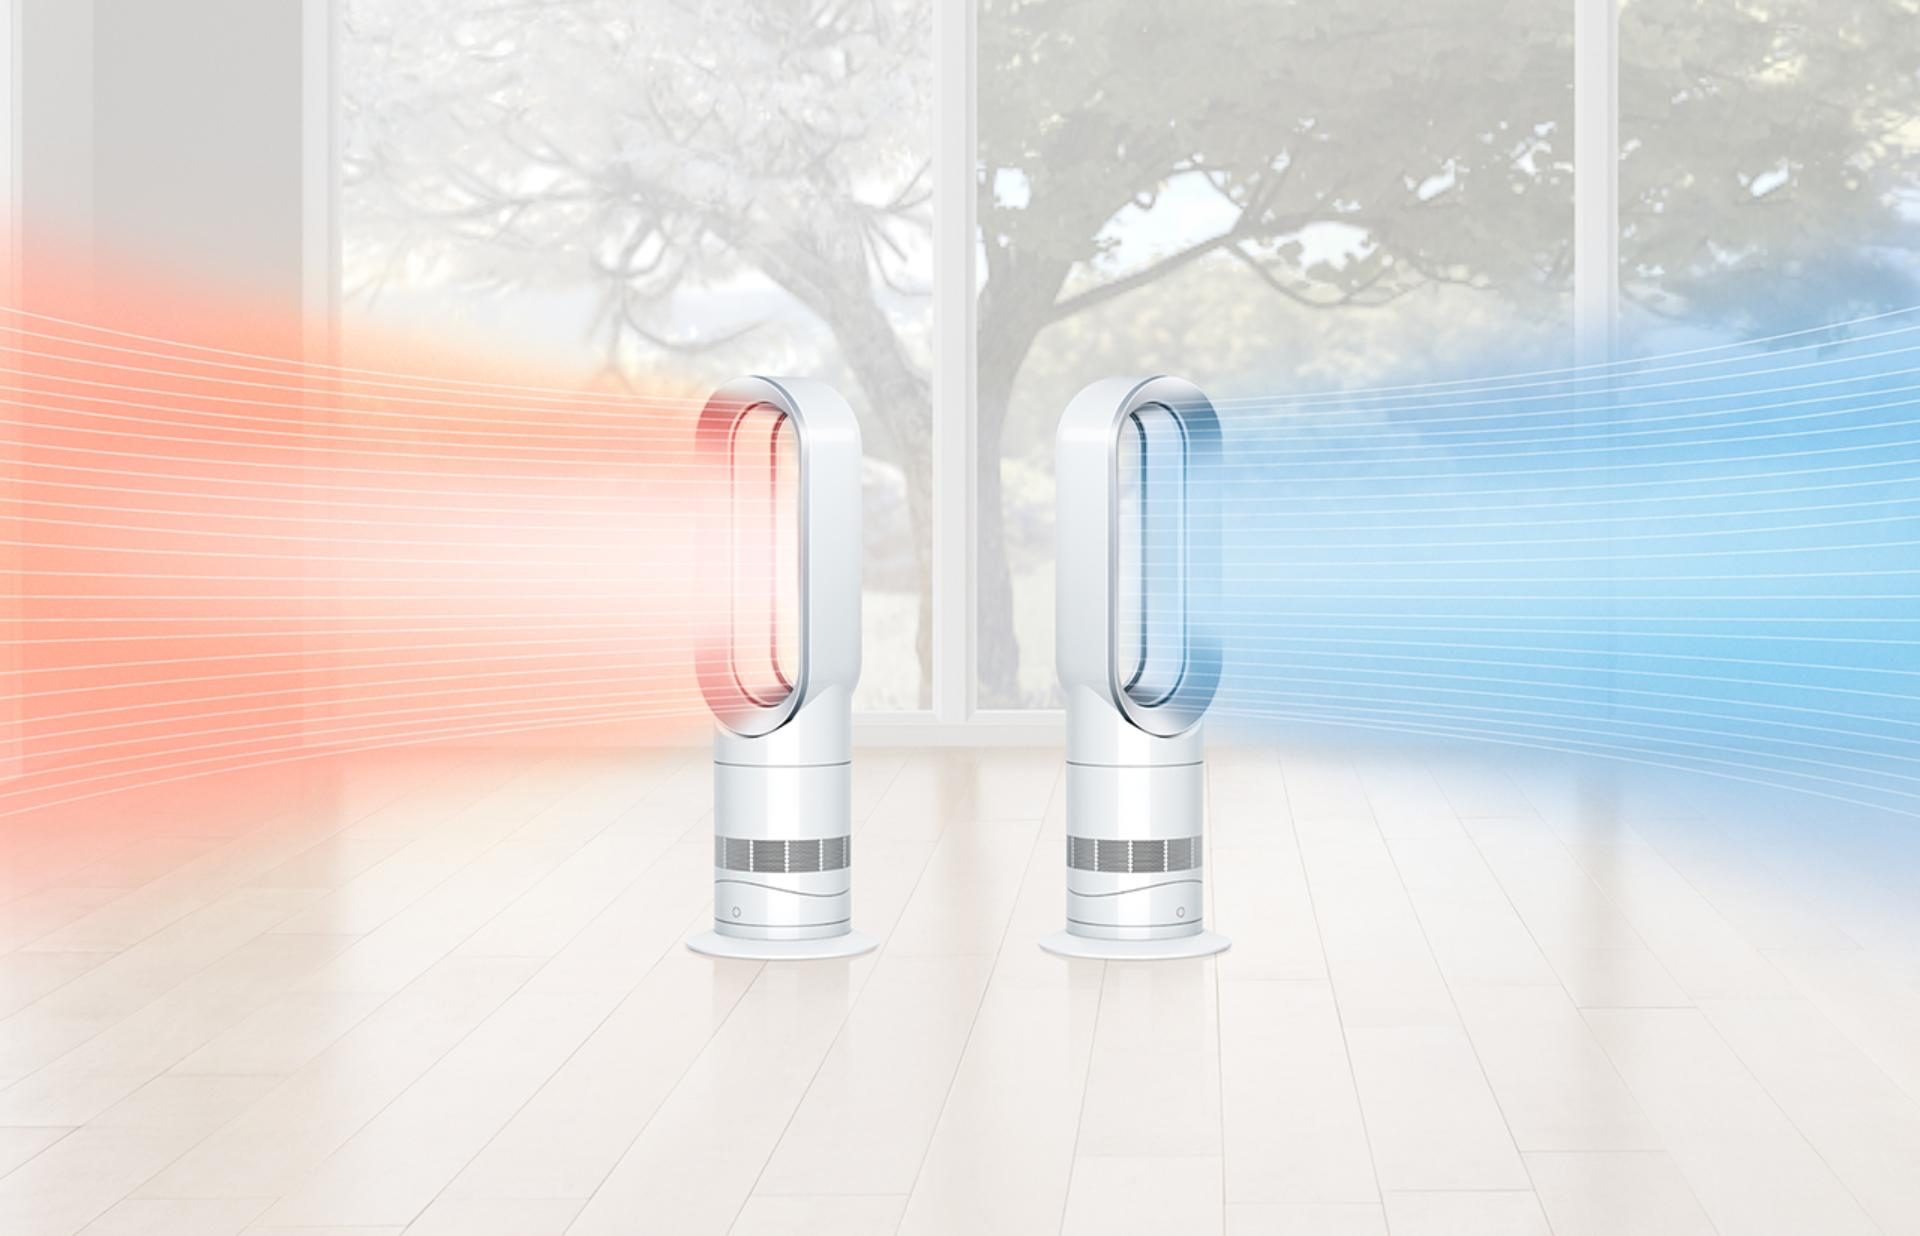 Two Dyson Hot+Cool™ fan heaters